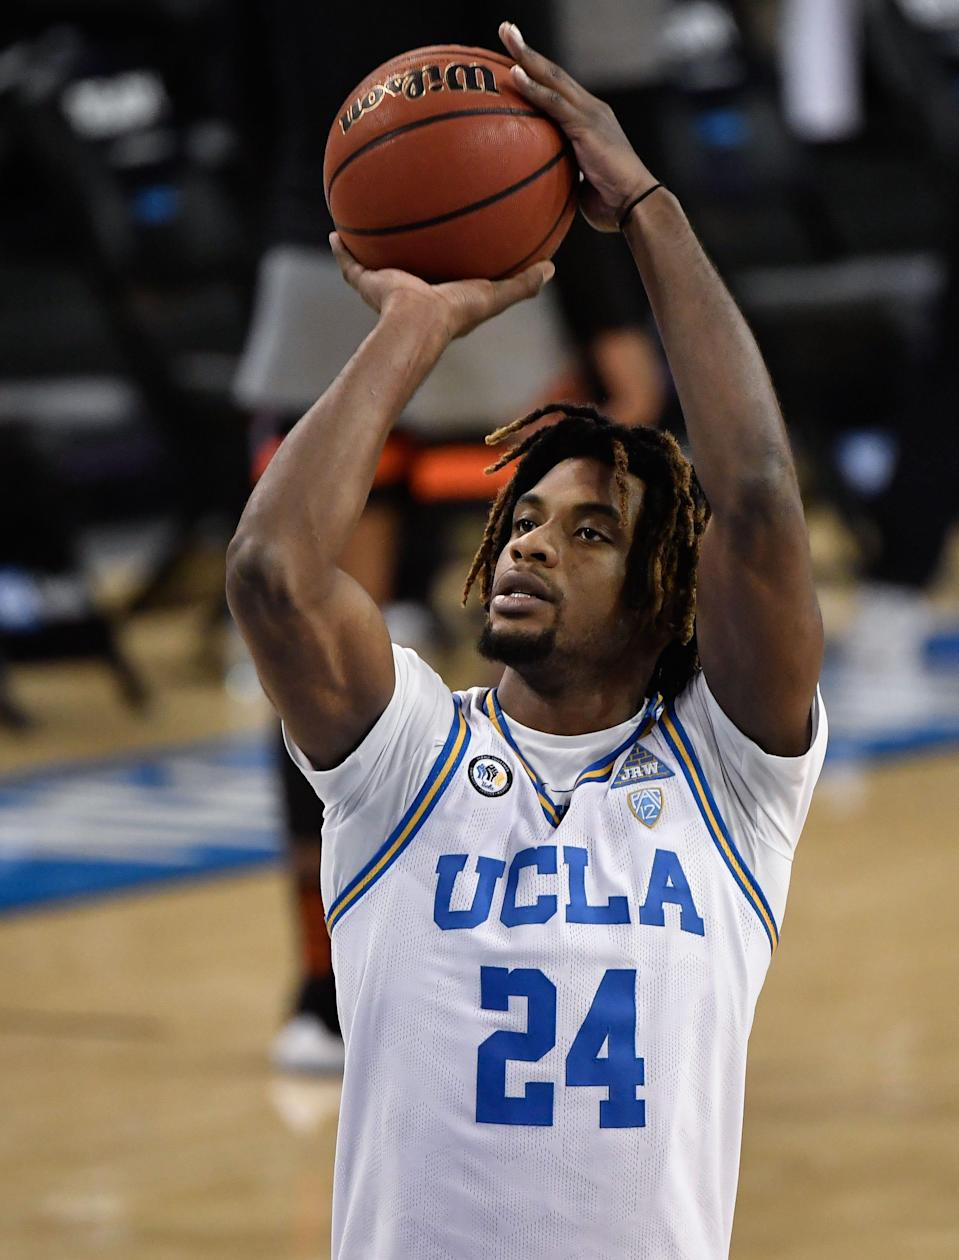 UCLA forward Jalen Hill shoots a free throw during a January game against Oregon State.